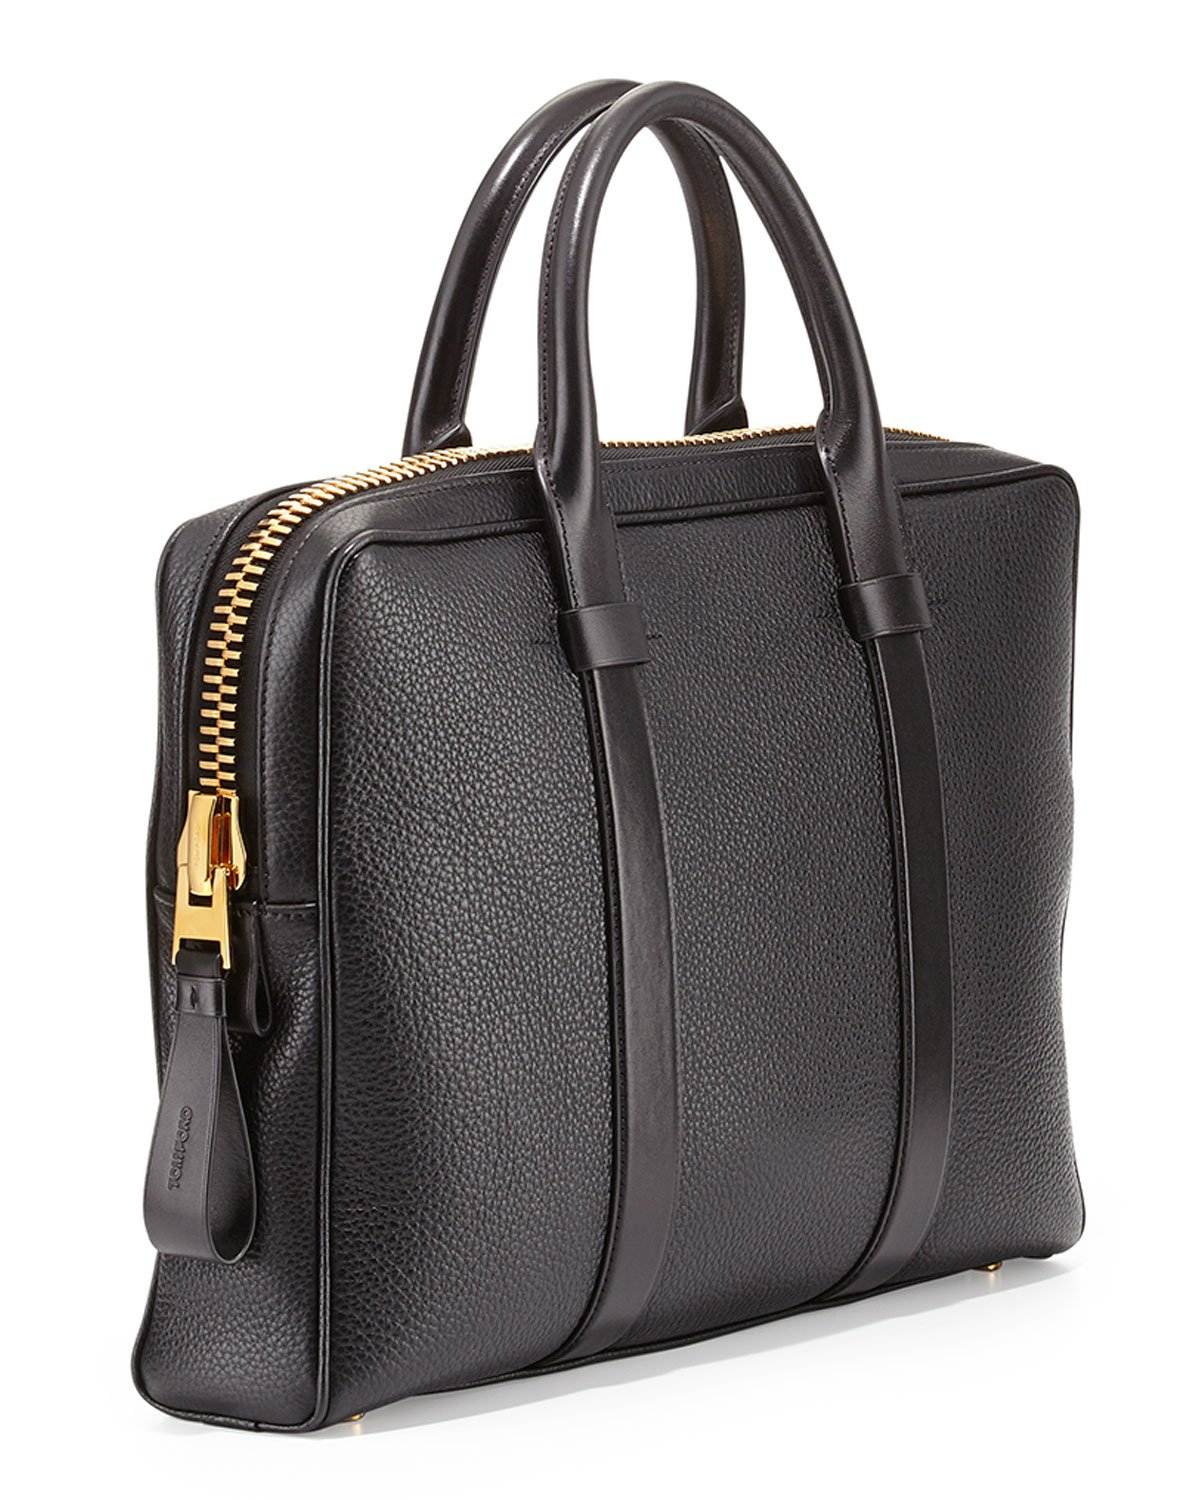 Lyst - Tom Ford Buckley Leather Briefcase in Black for Men